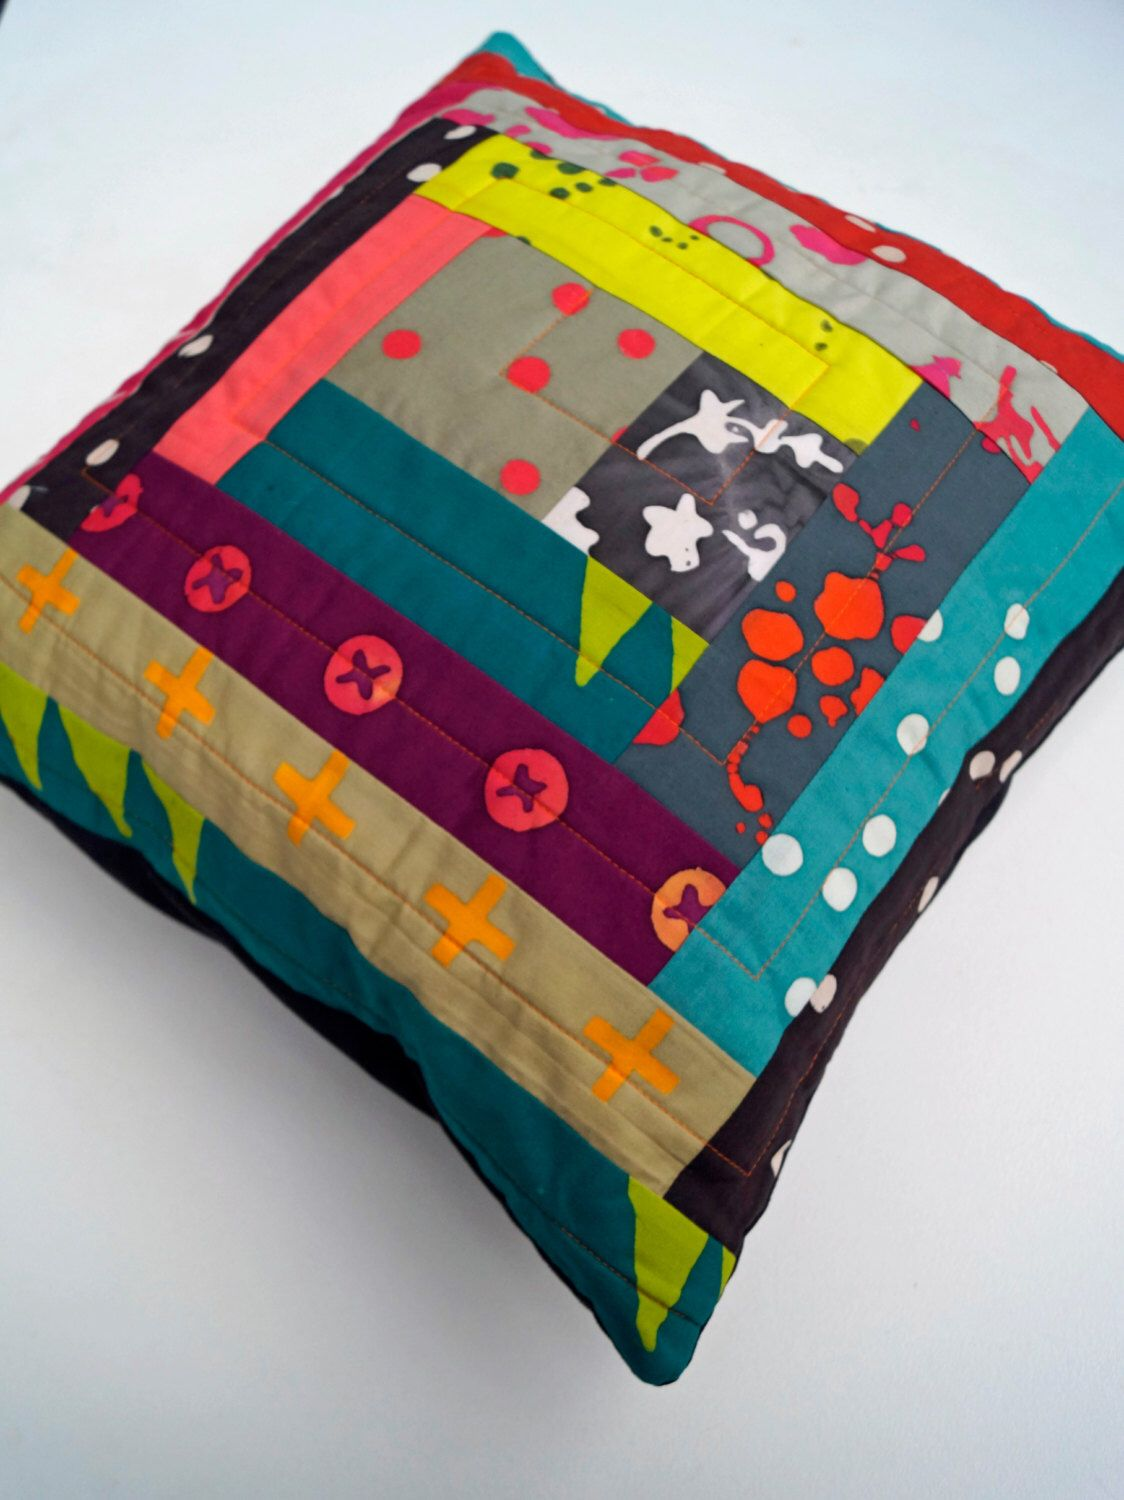 Patchwork Throw Pillow Cover for 14 inch Pillow - COVER ONLY - Quiltsy Handmade by MyBitOfWonder on Etsy https://www.etsy.com/listing/458325536/patchwork-throw-pillow-cover-for-14-inch